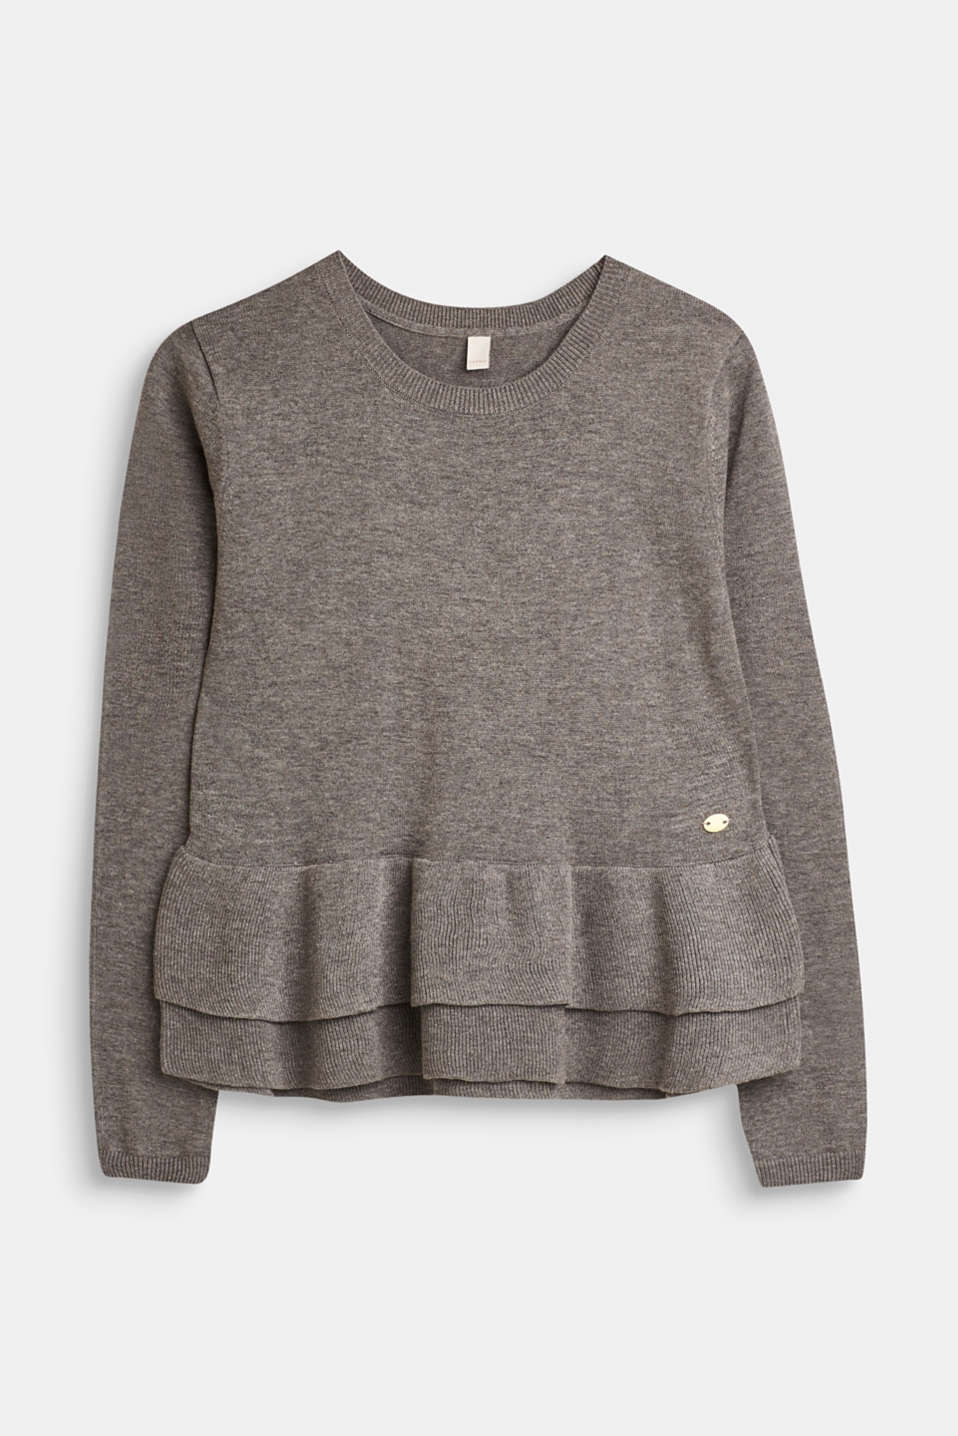 Esprit - Melange jumper with flounces